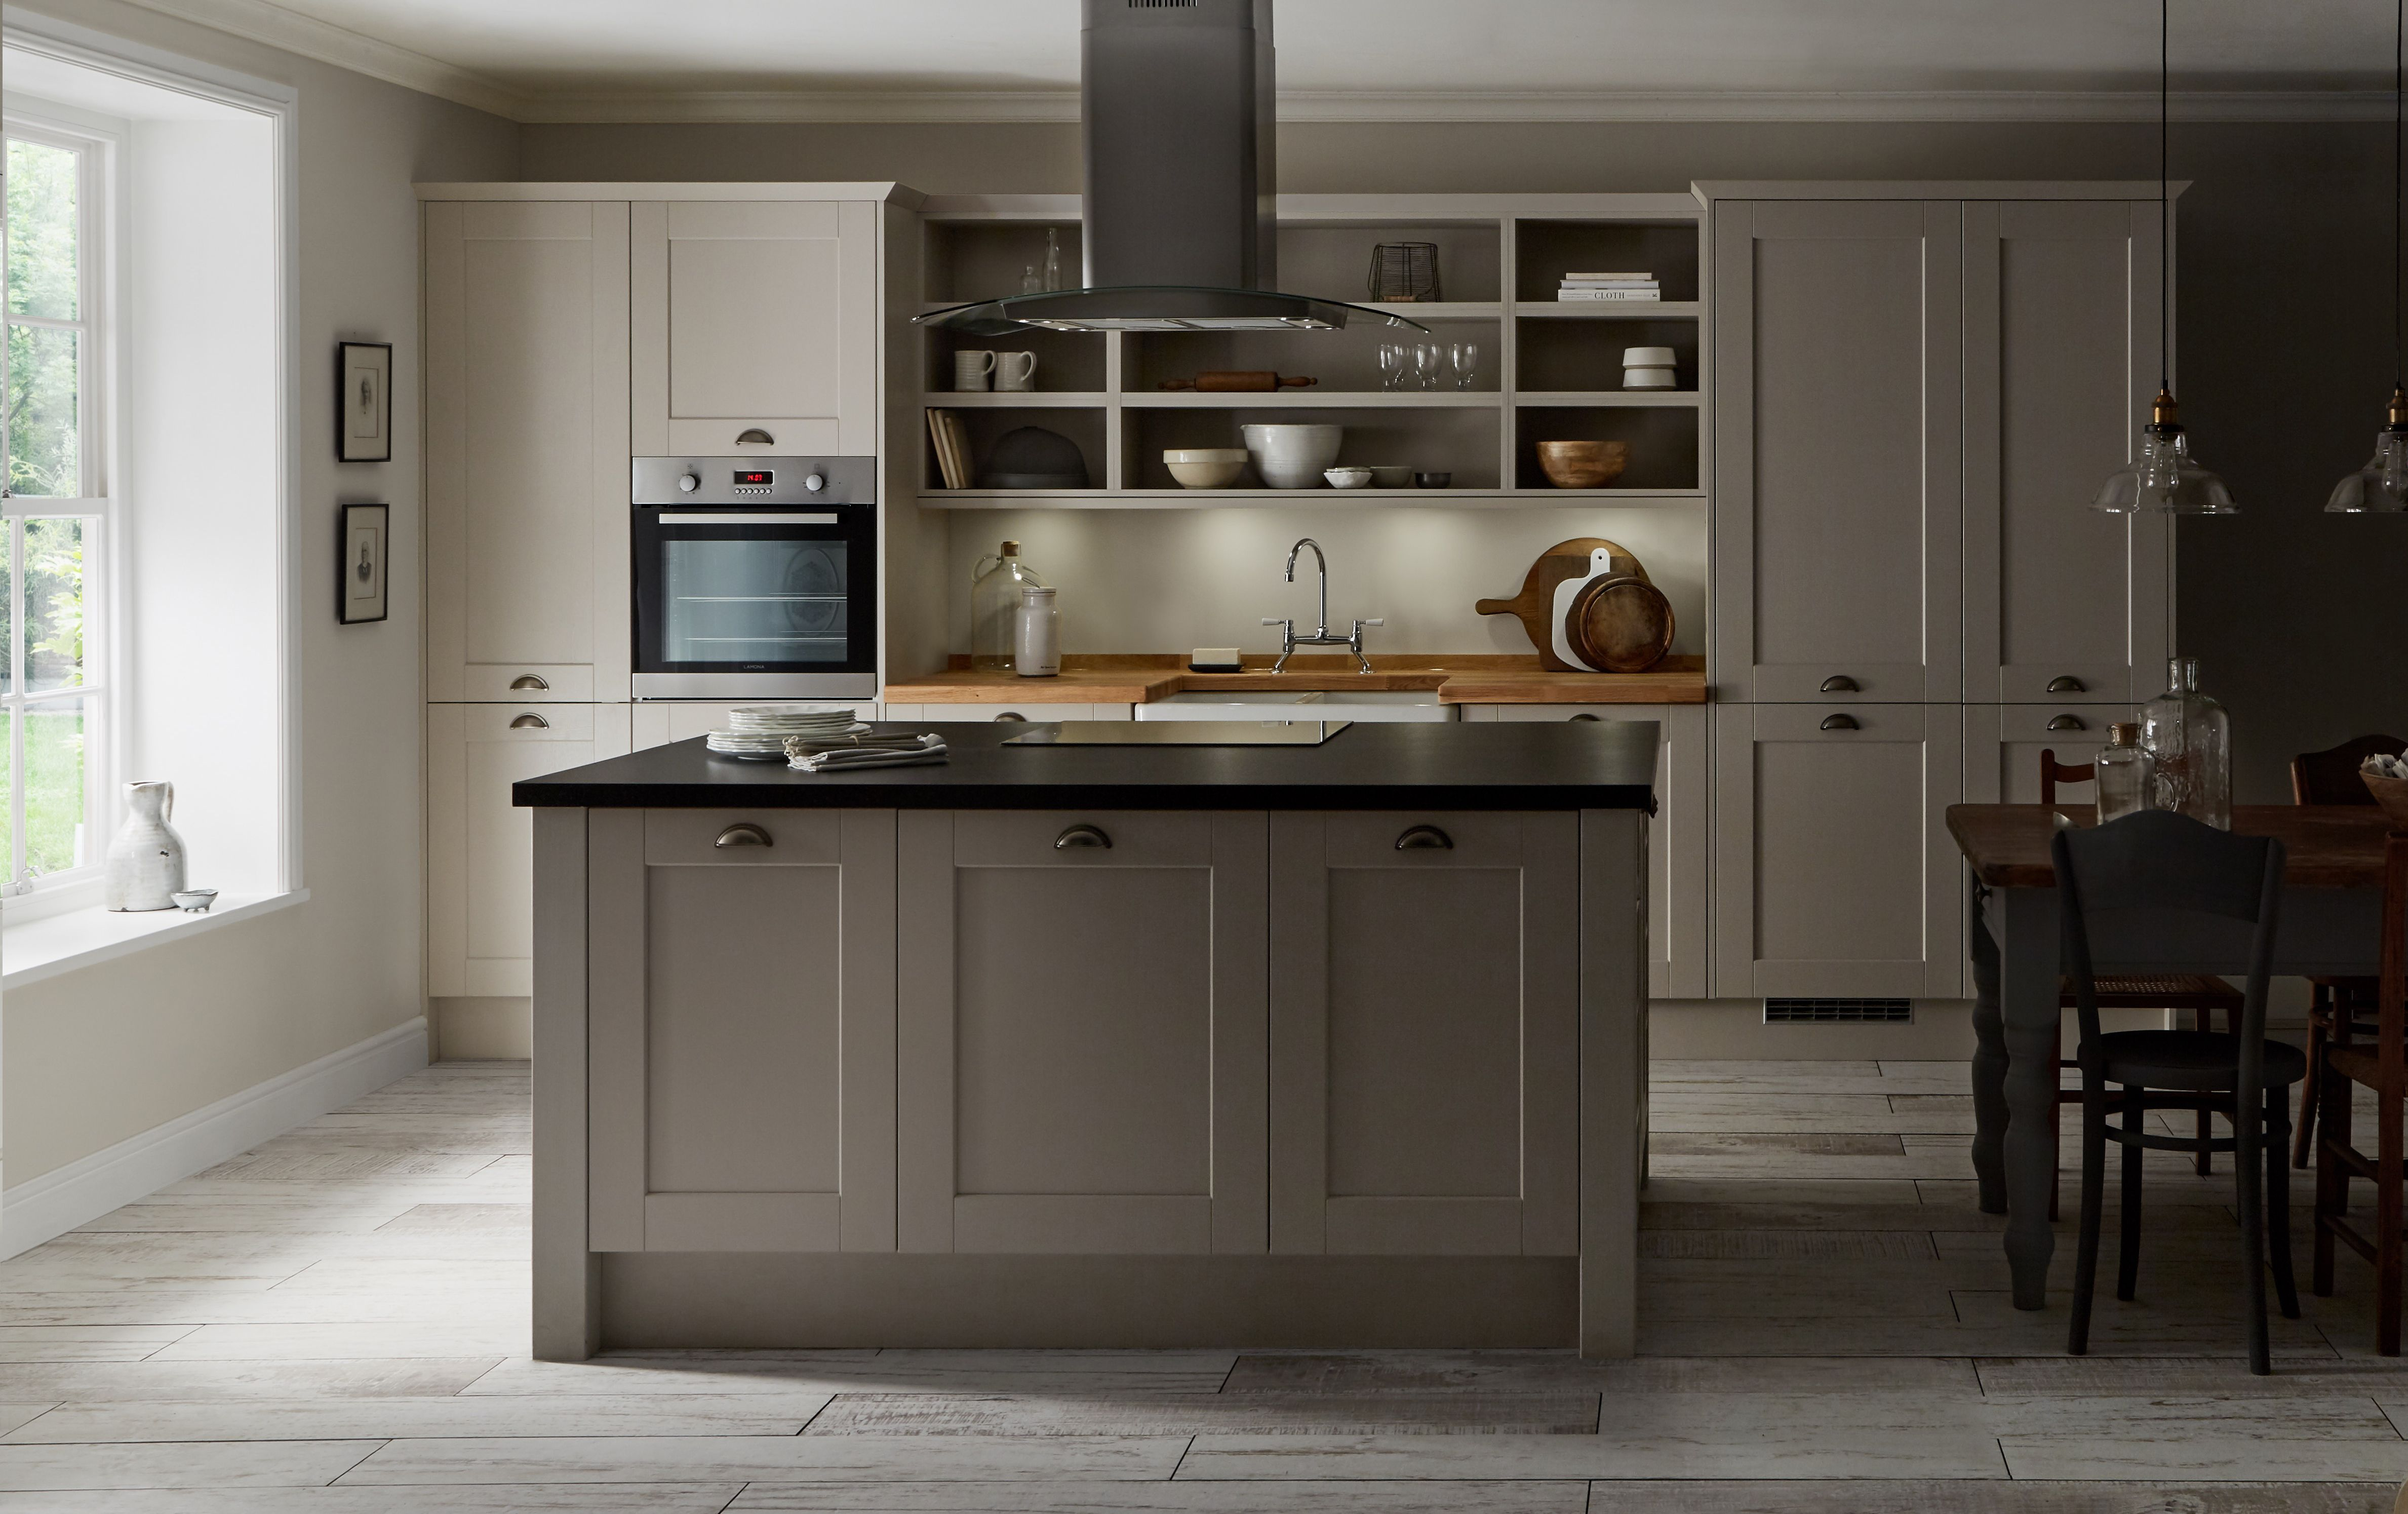 Howdens Kitchen Base Cabinets Howden Doors Sizes And Burford Grained Stone Kitchen From